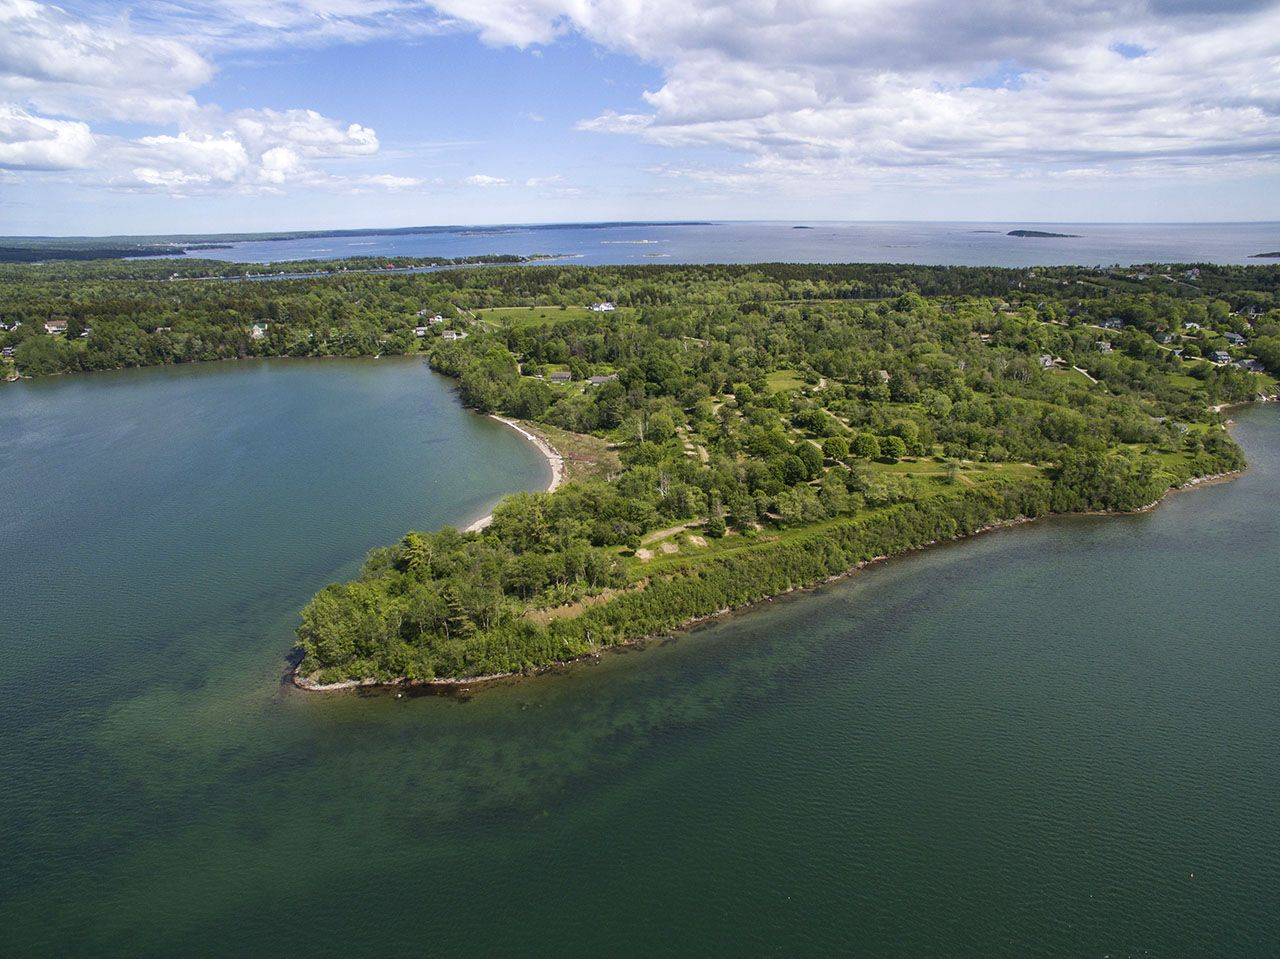 Single Family Home for Sale at Bond Point Waterfront Land 1 Bond Point Road Harpswell, Maine,04079 United States